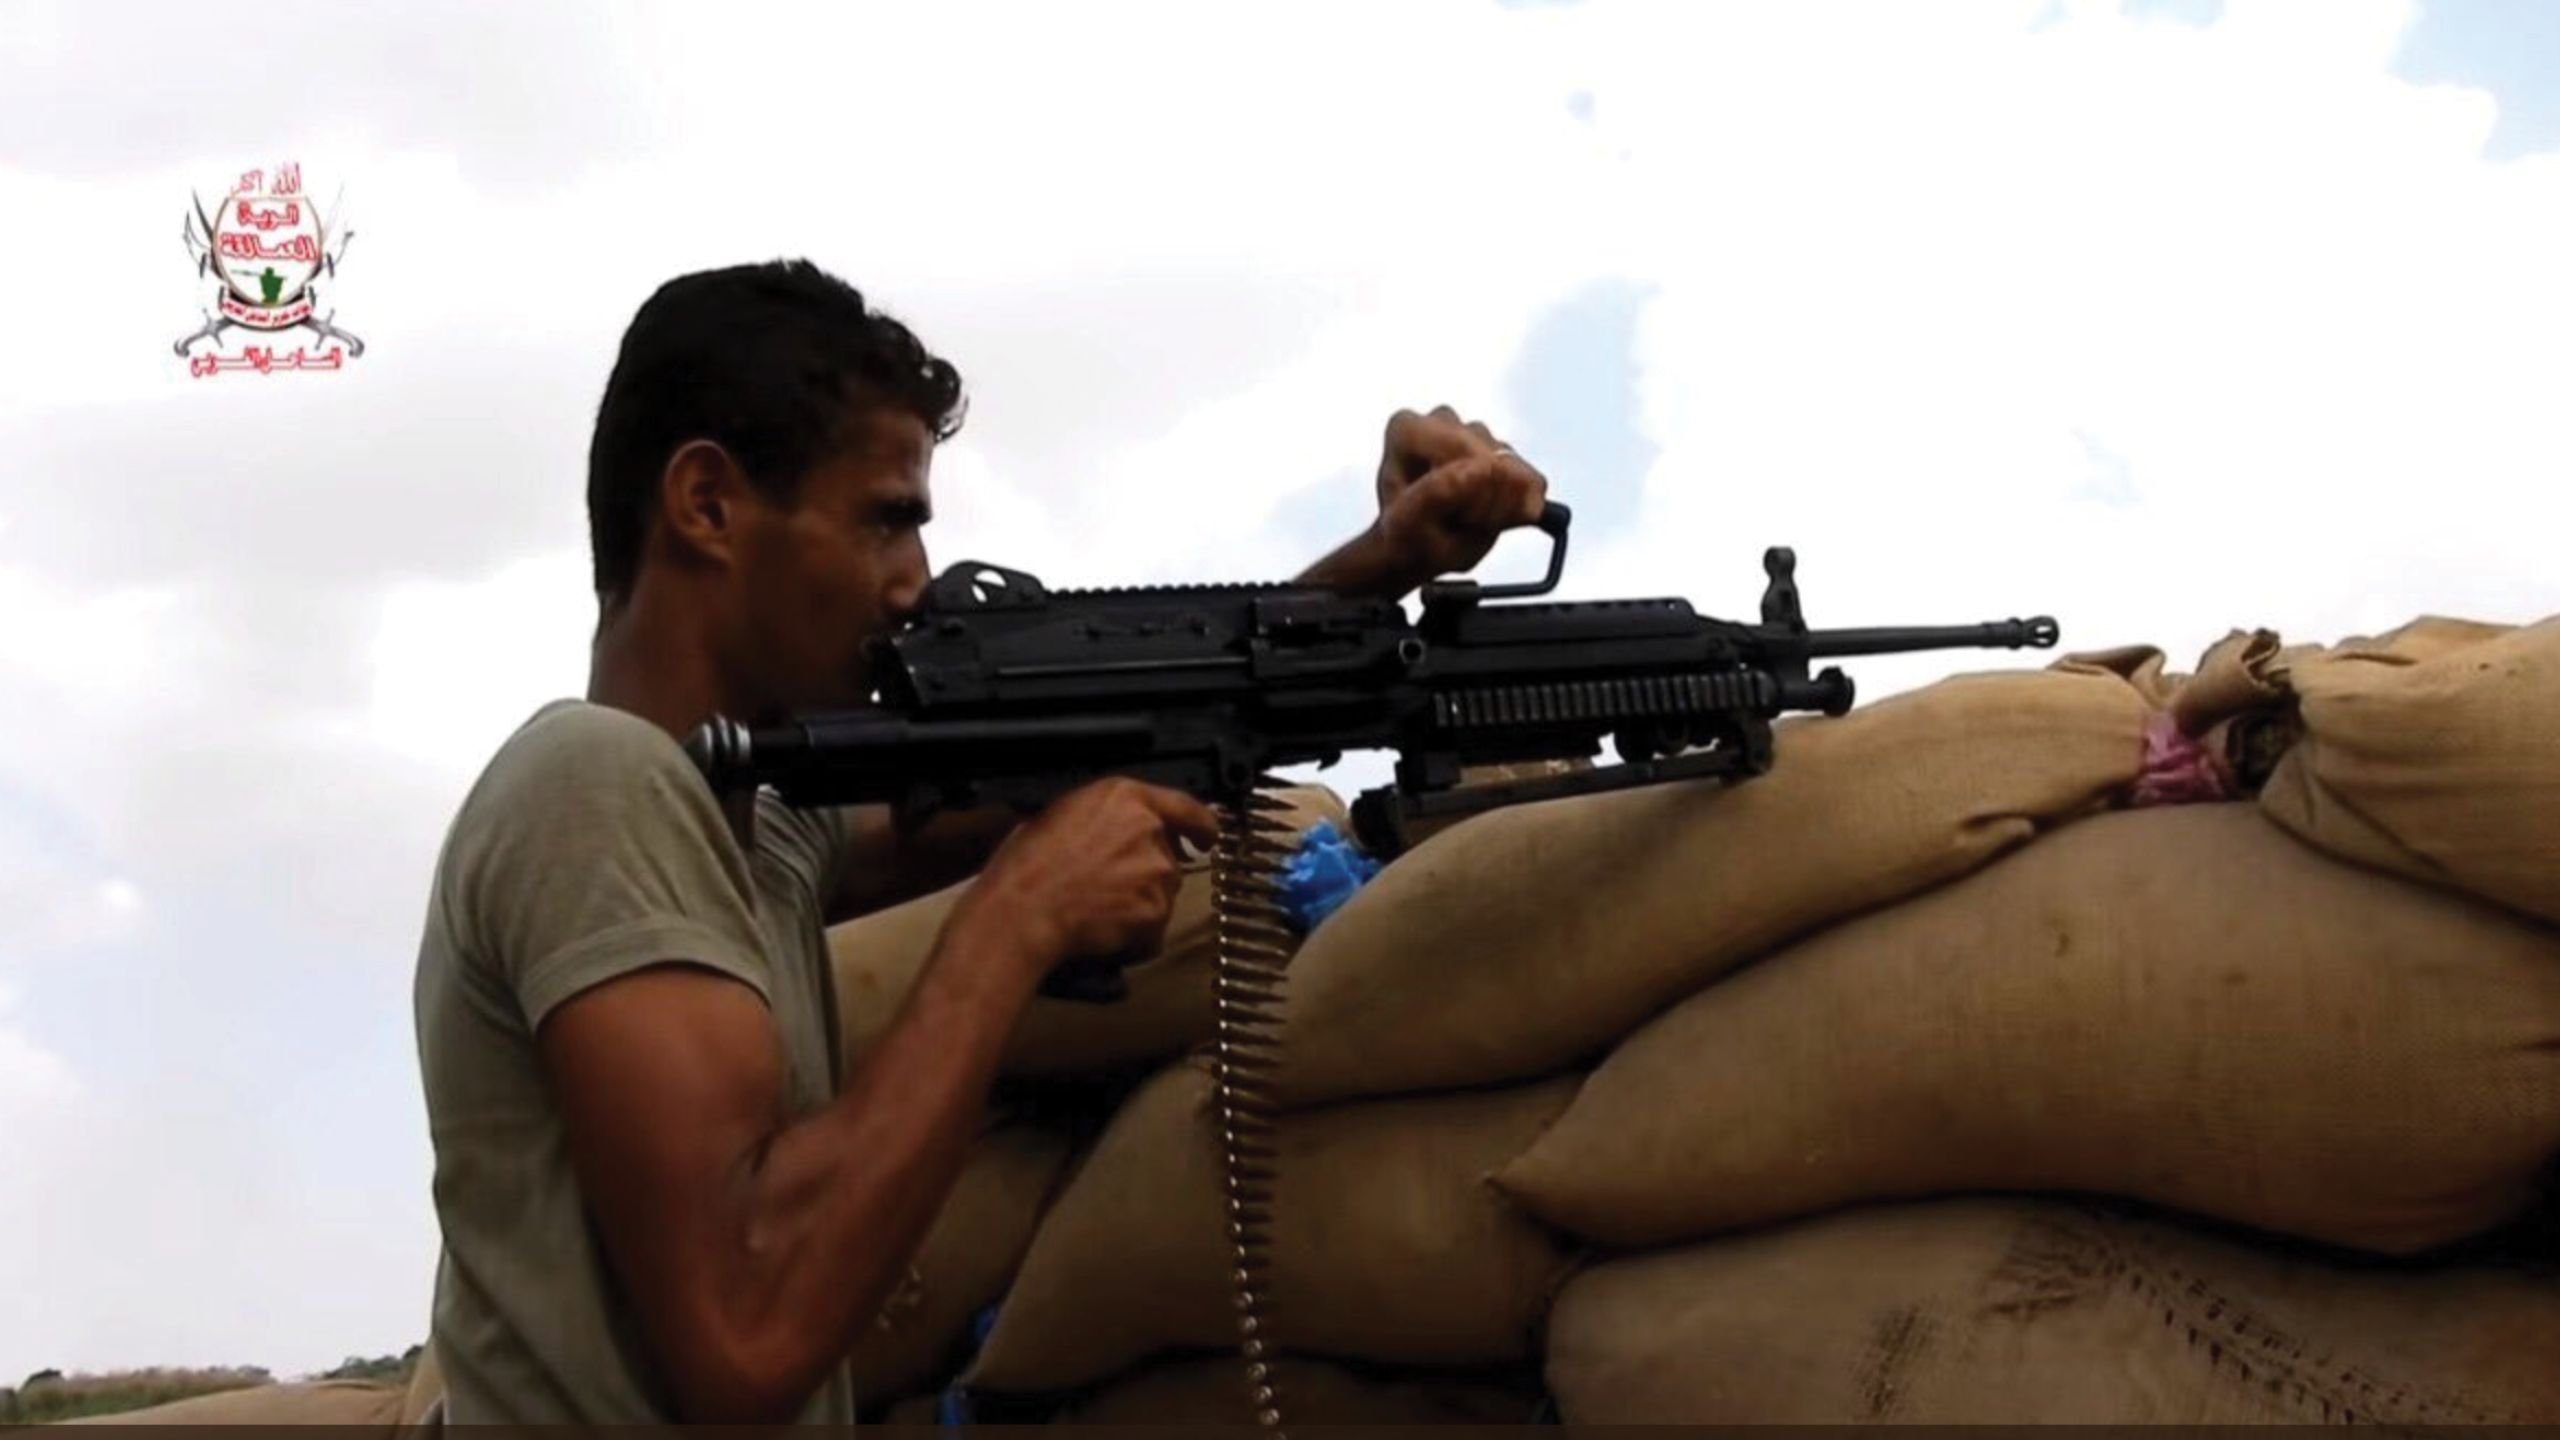 Light machine gun Bulgian-made Minimi UAE supplied the Giants with, according to Amnesty International